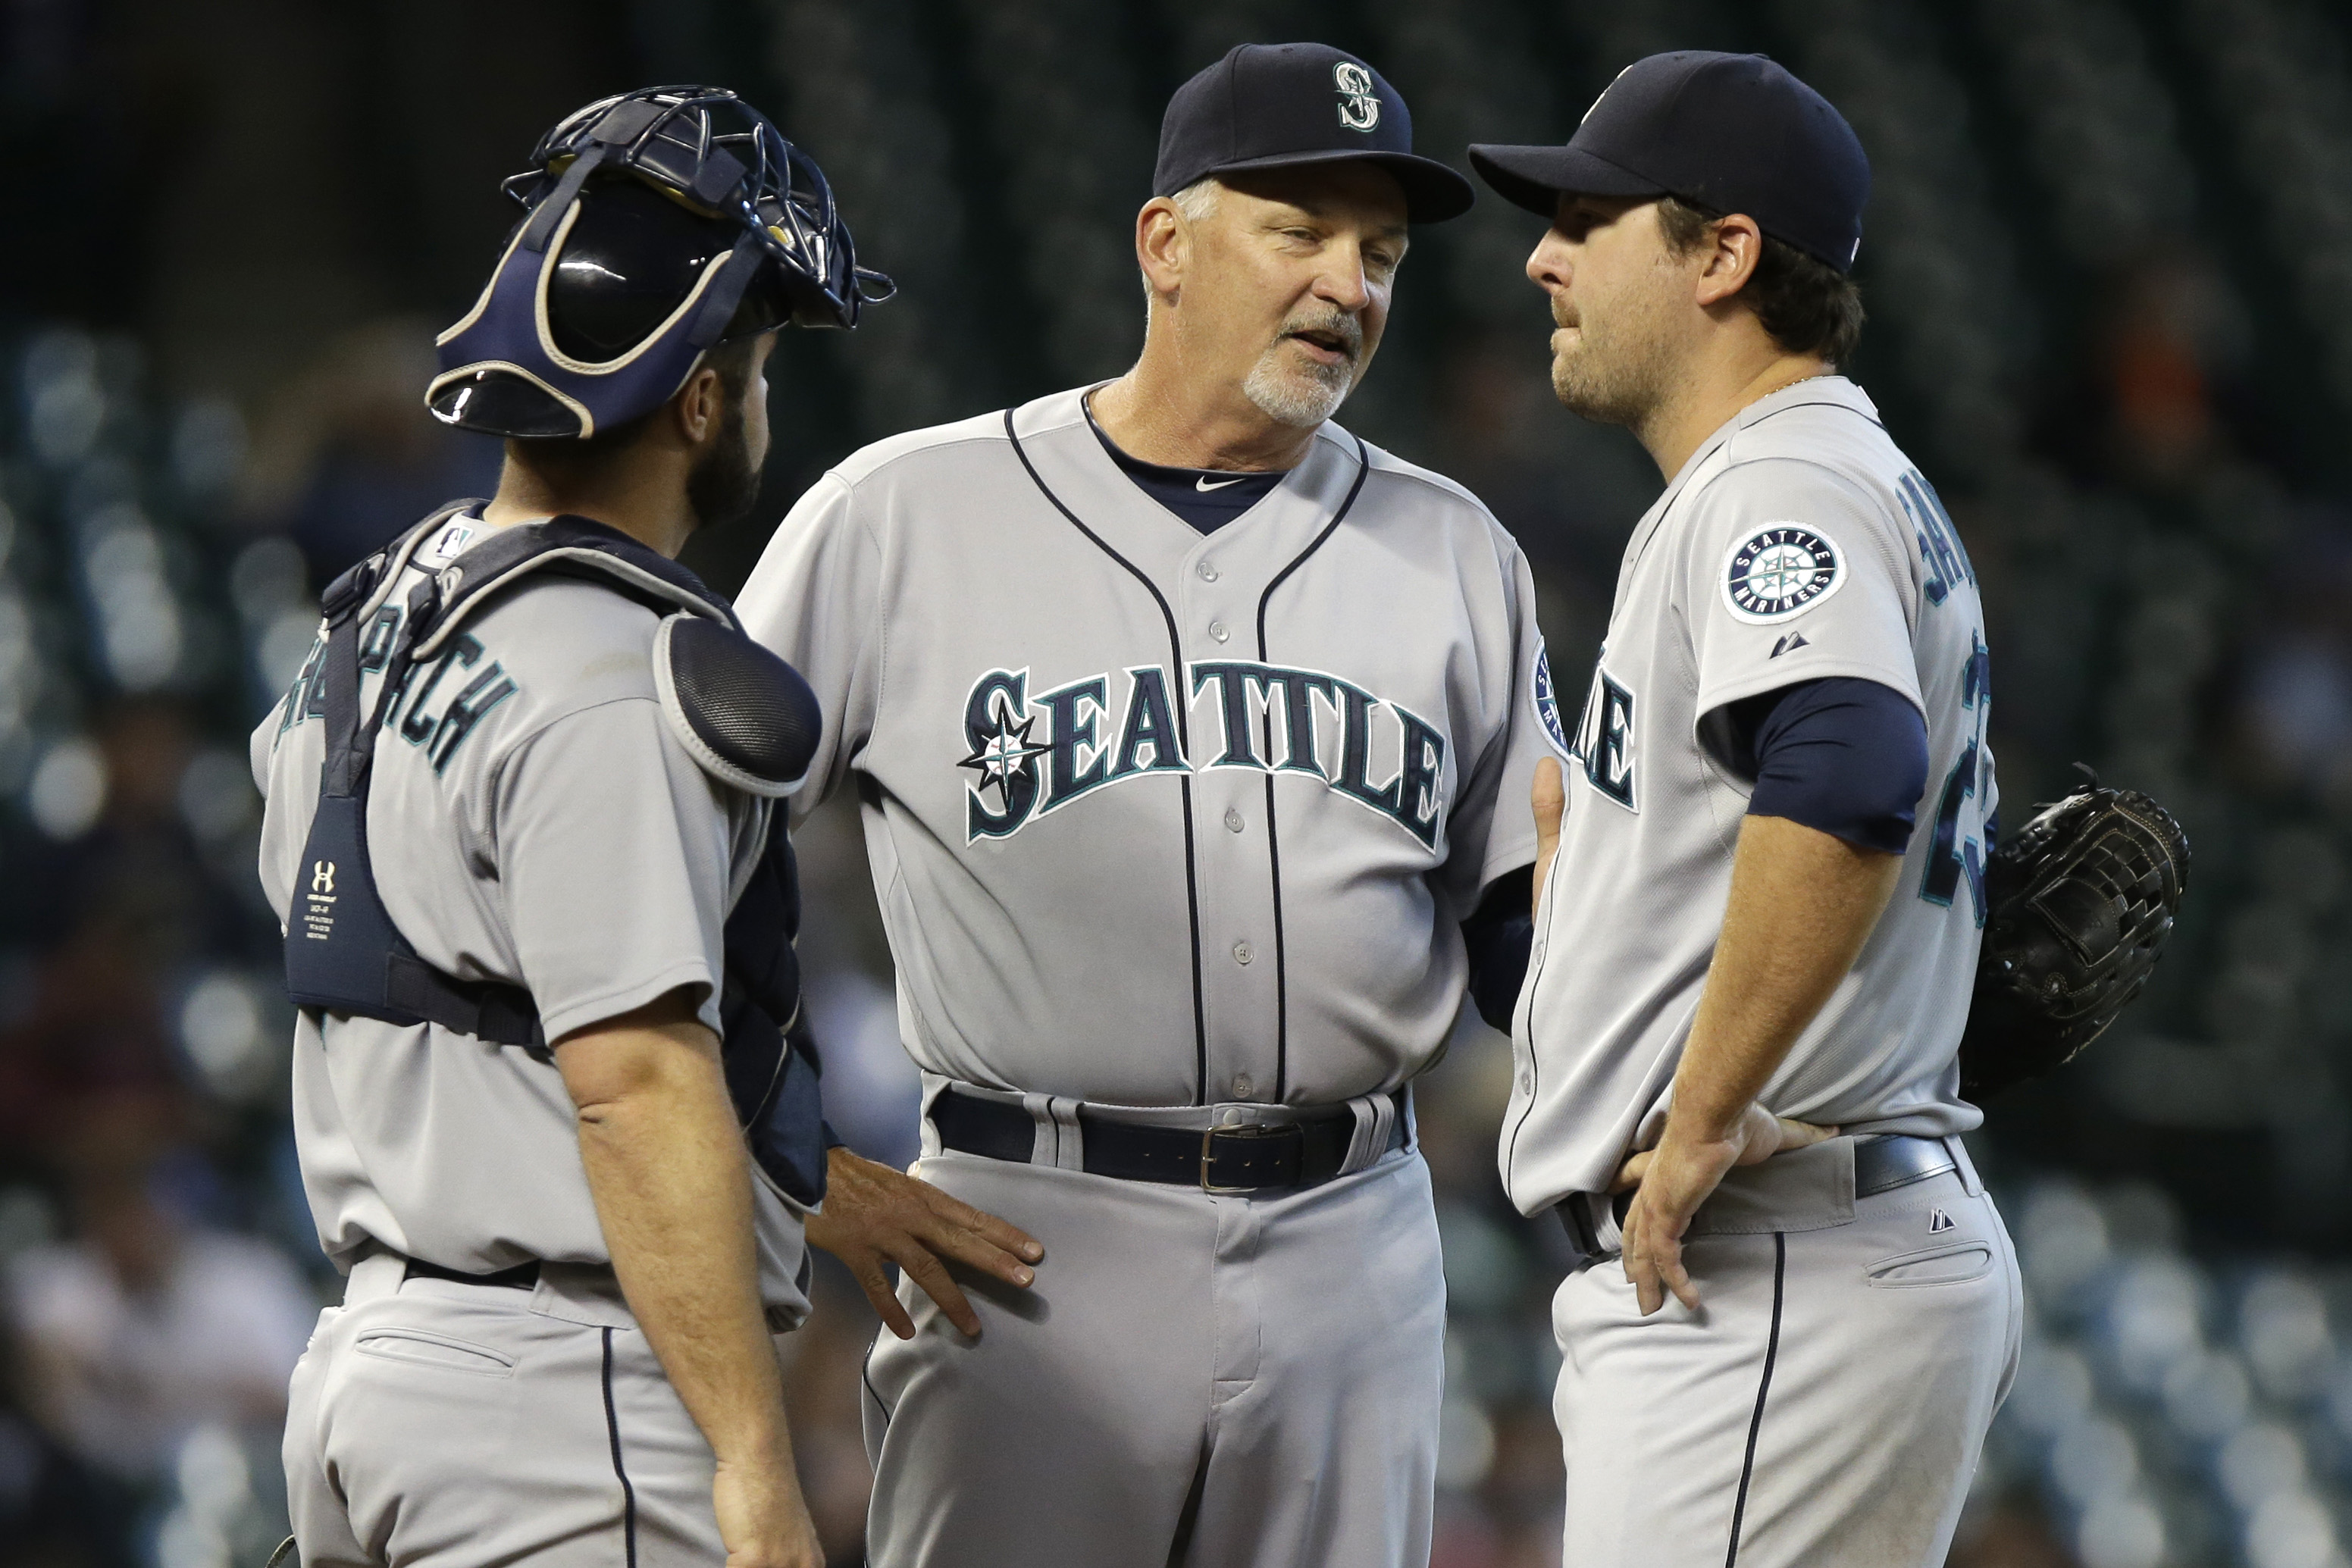 Seattle Mariners pitching coach Carl Willis, center, talks with starting pitcher Joe Saunders, right, and catcher Kelly Shoppach in the sixth inning of a baseball game against the Houston Astros Wednesday, April 24, 2013, in Houston. (AP Photo/Pat Sulliva